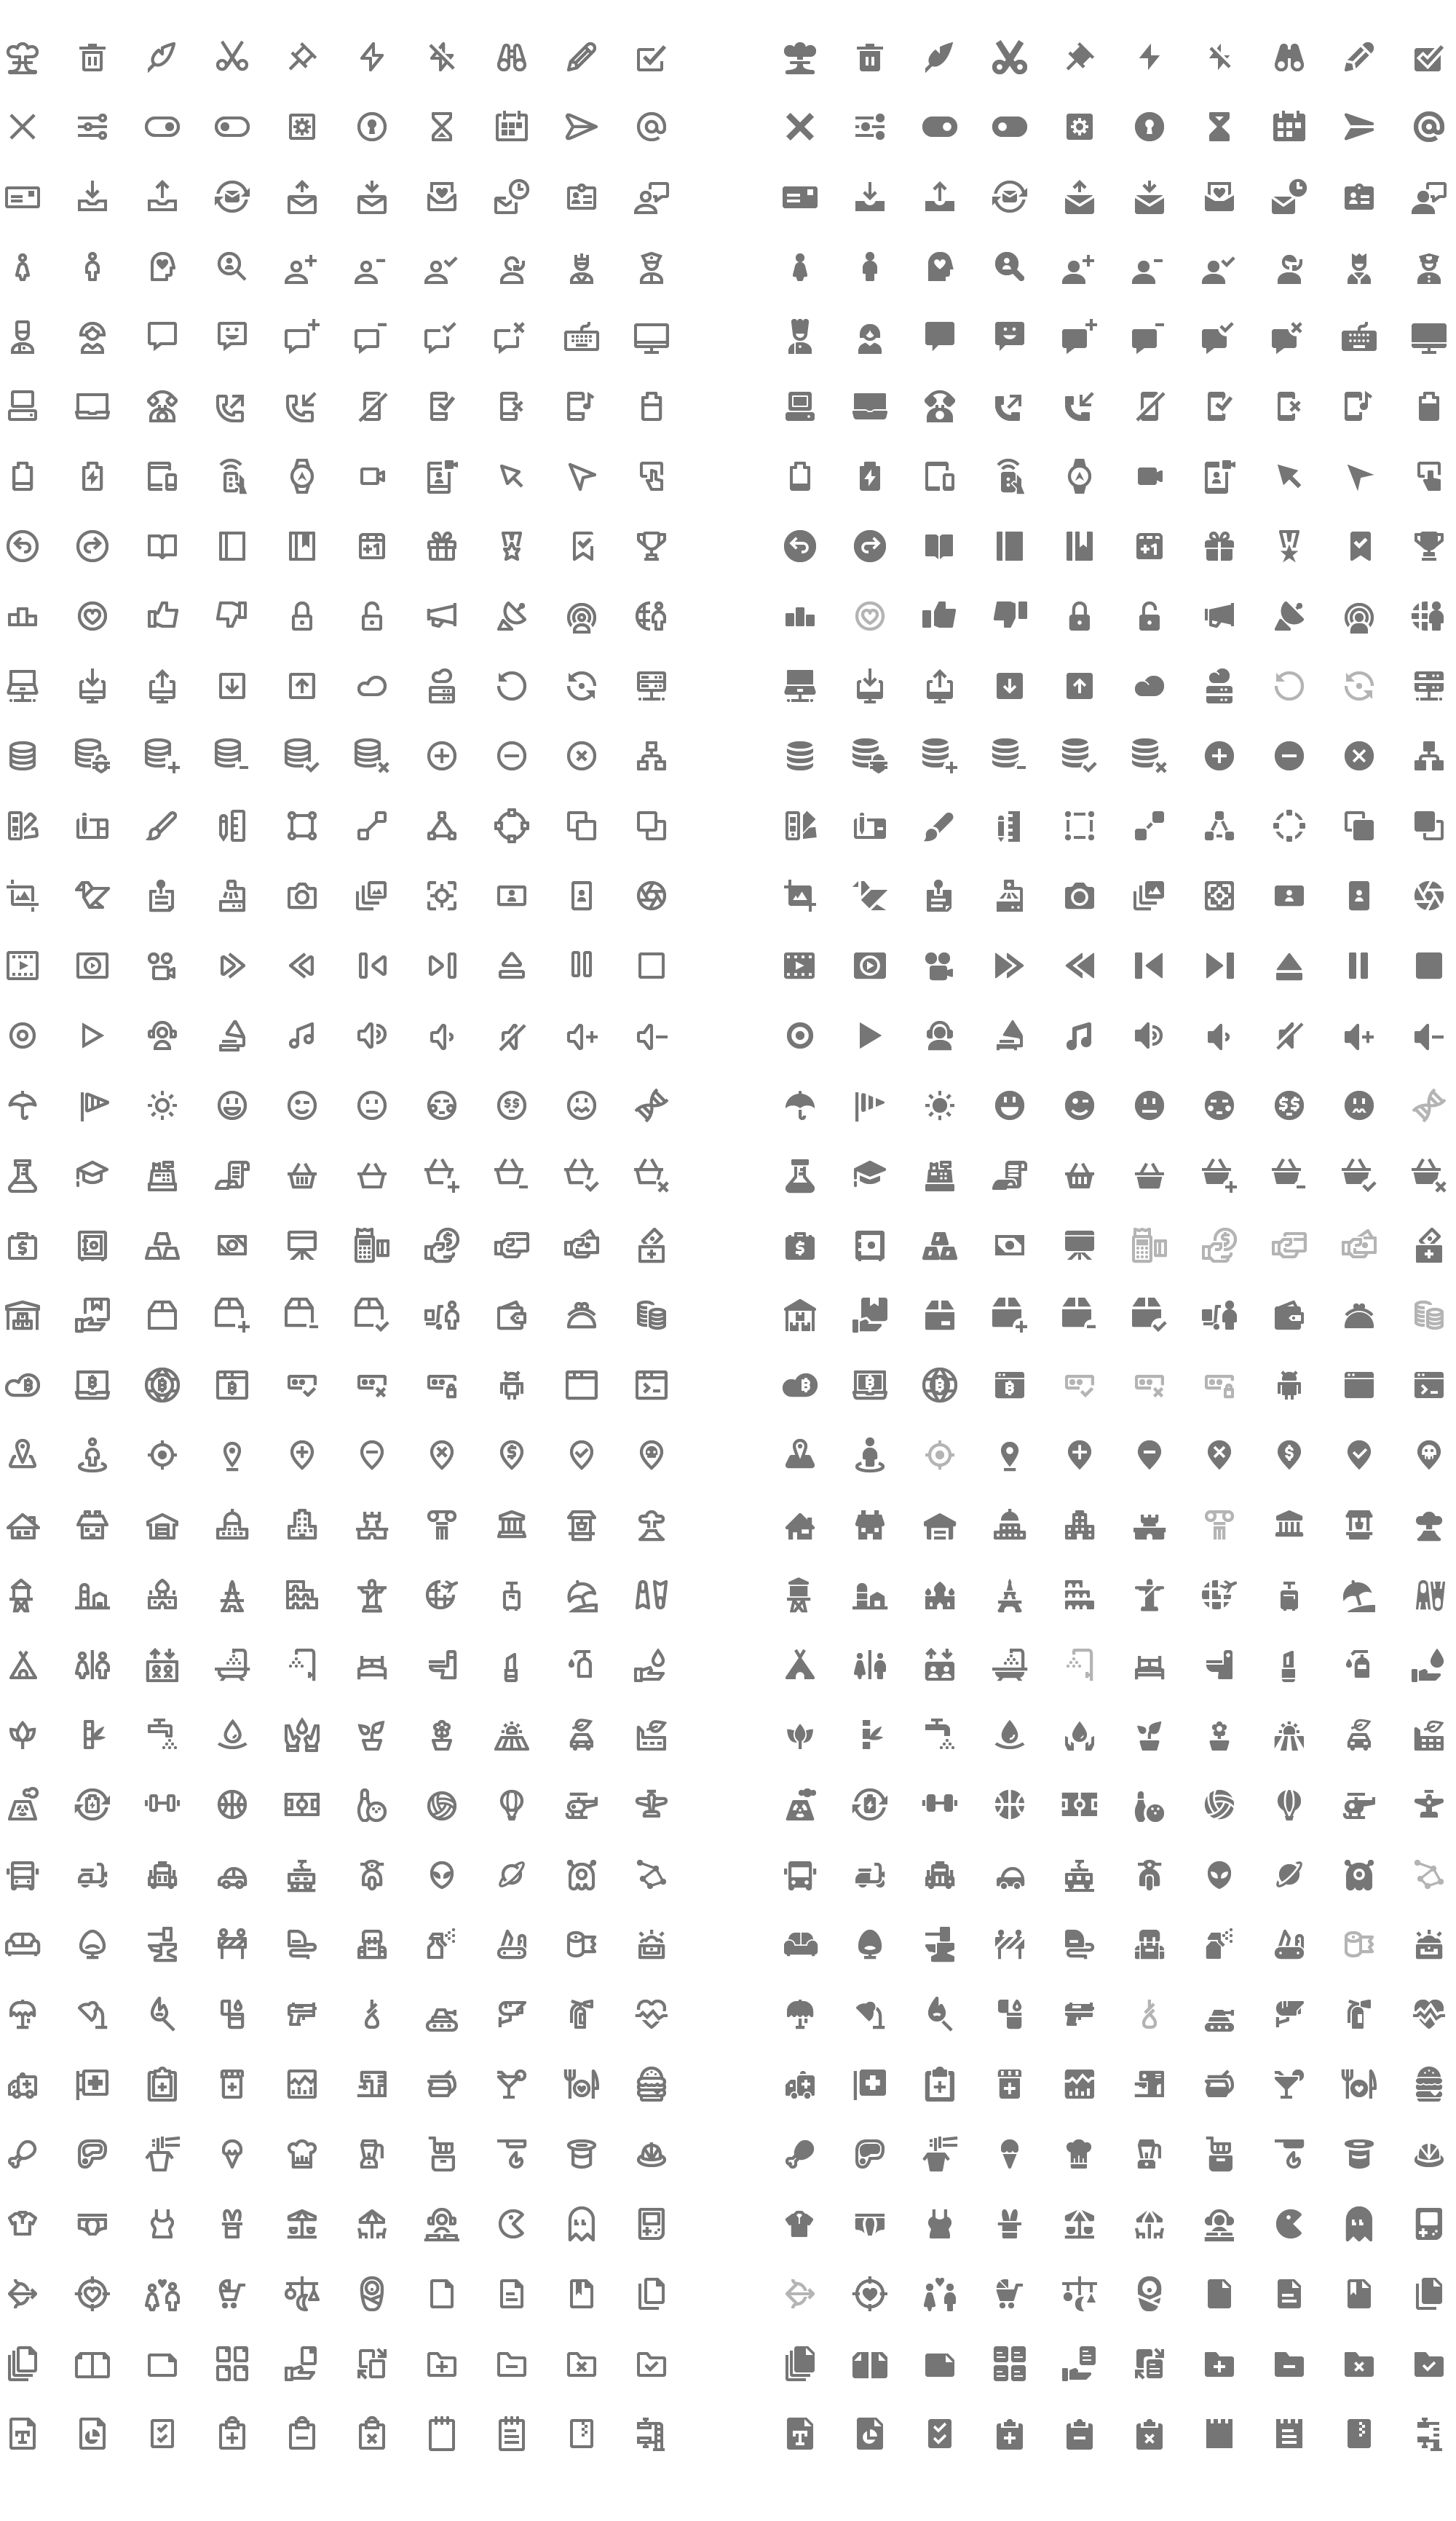 2000x3462 350 Free Vector Icons. Google Material Design Icons Style.